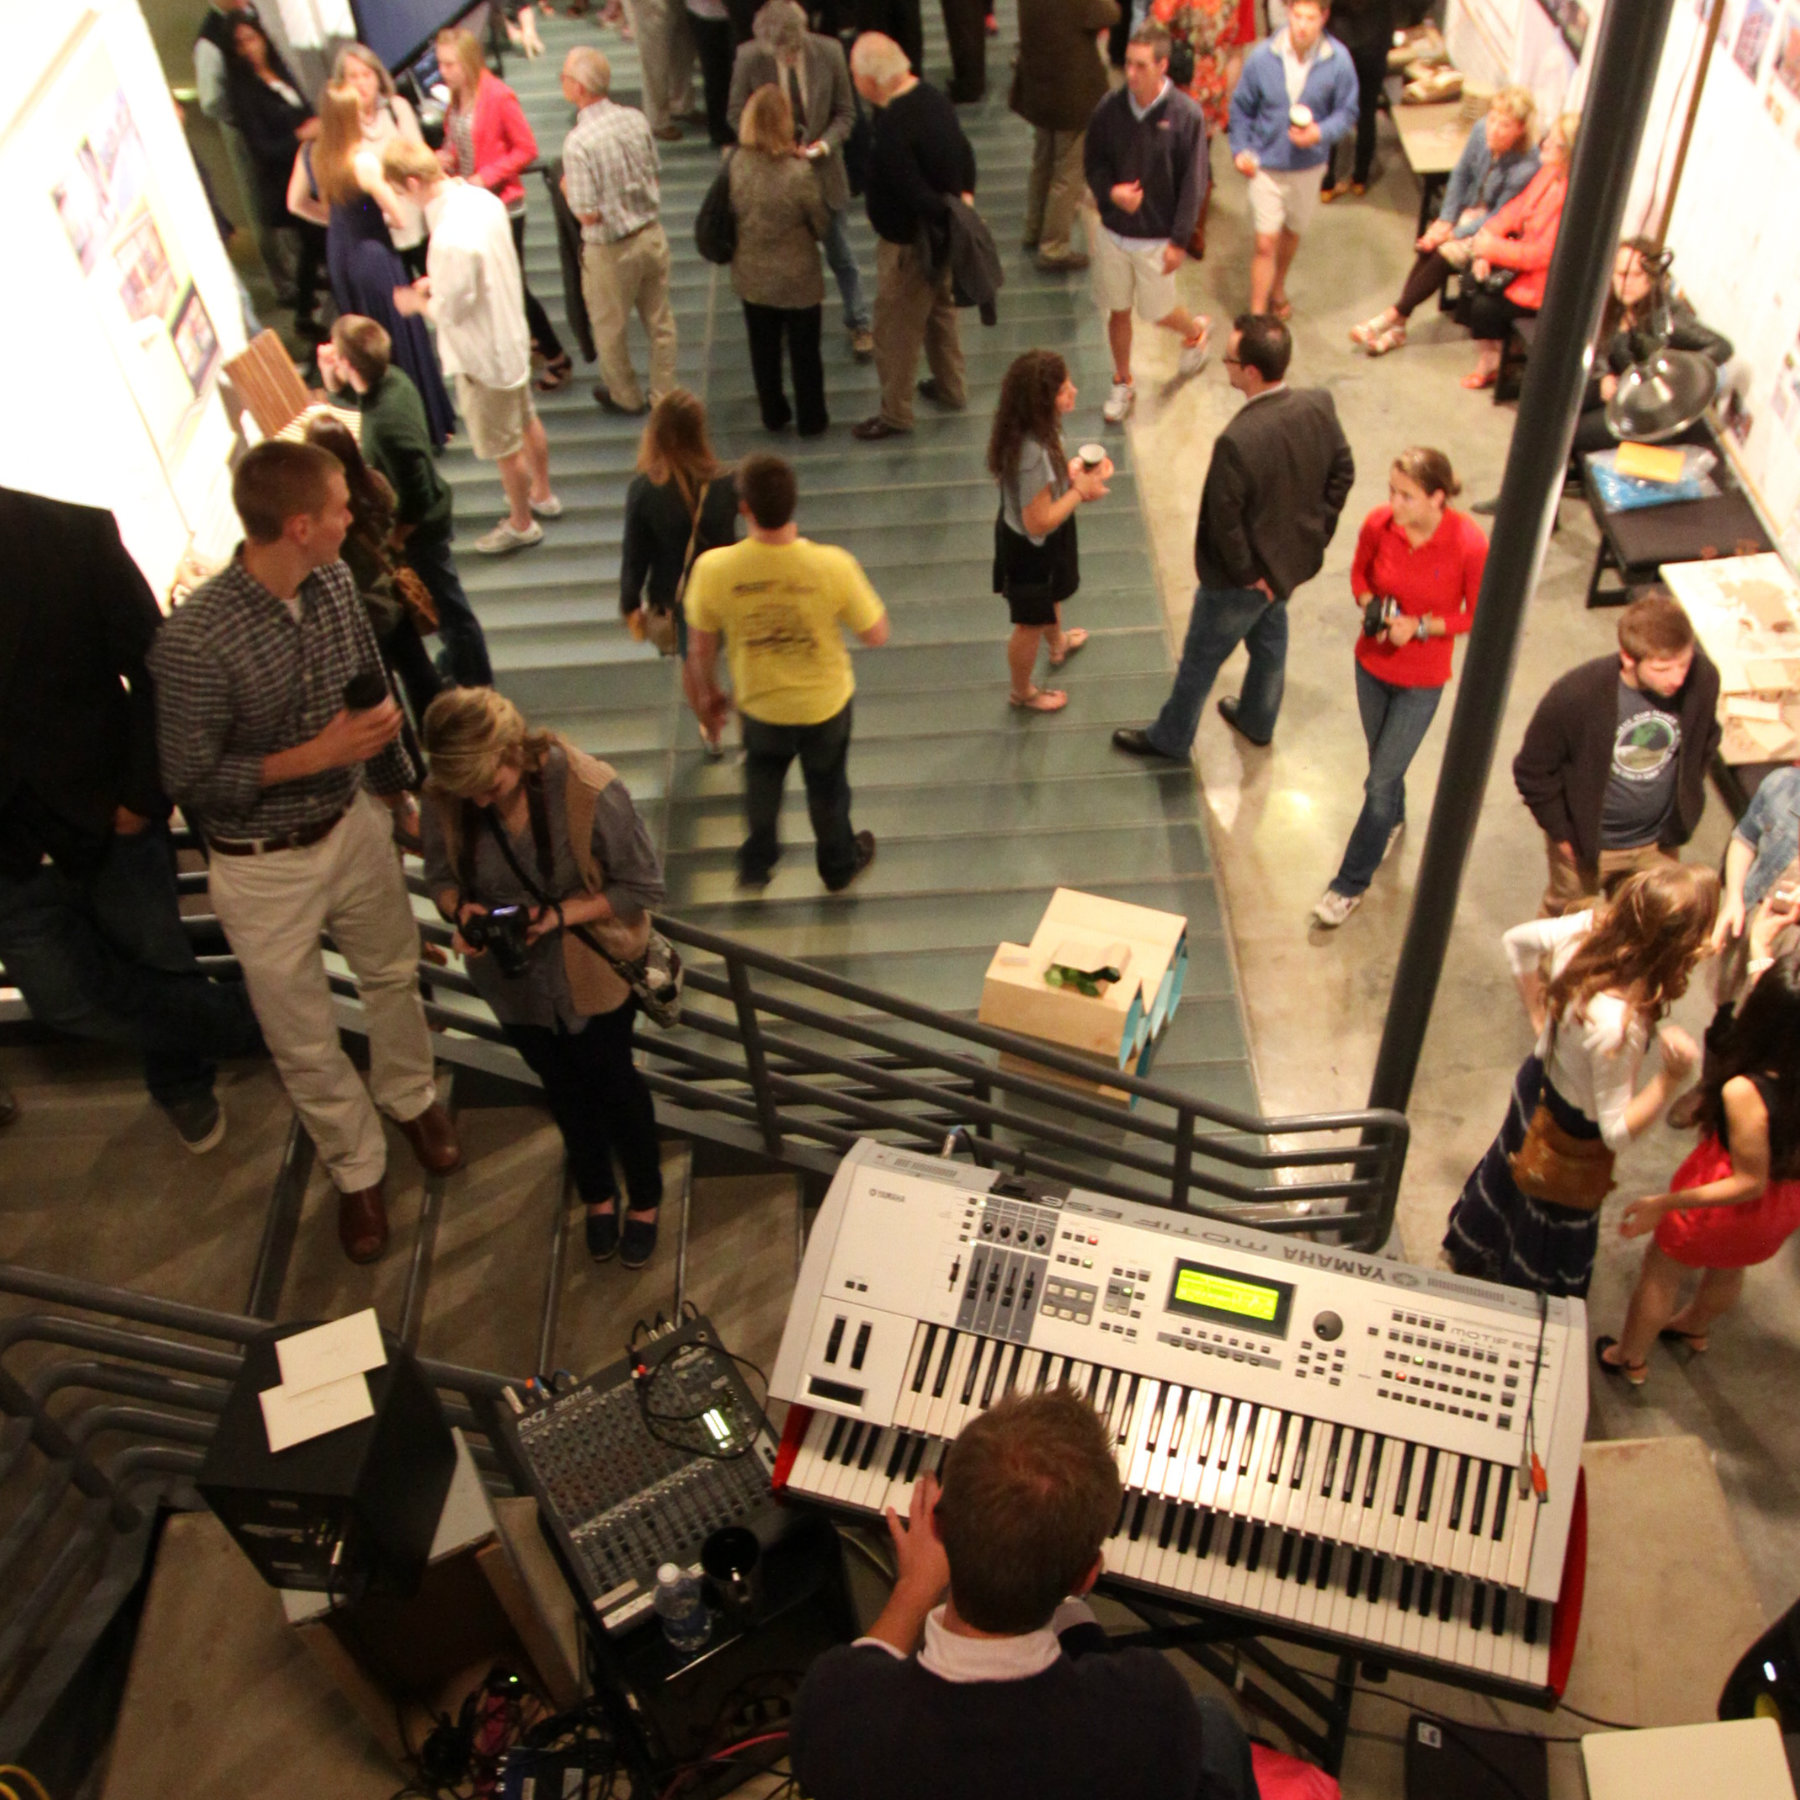 atrium full of people at open house with keyboard in the foreground